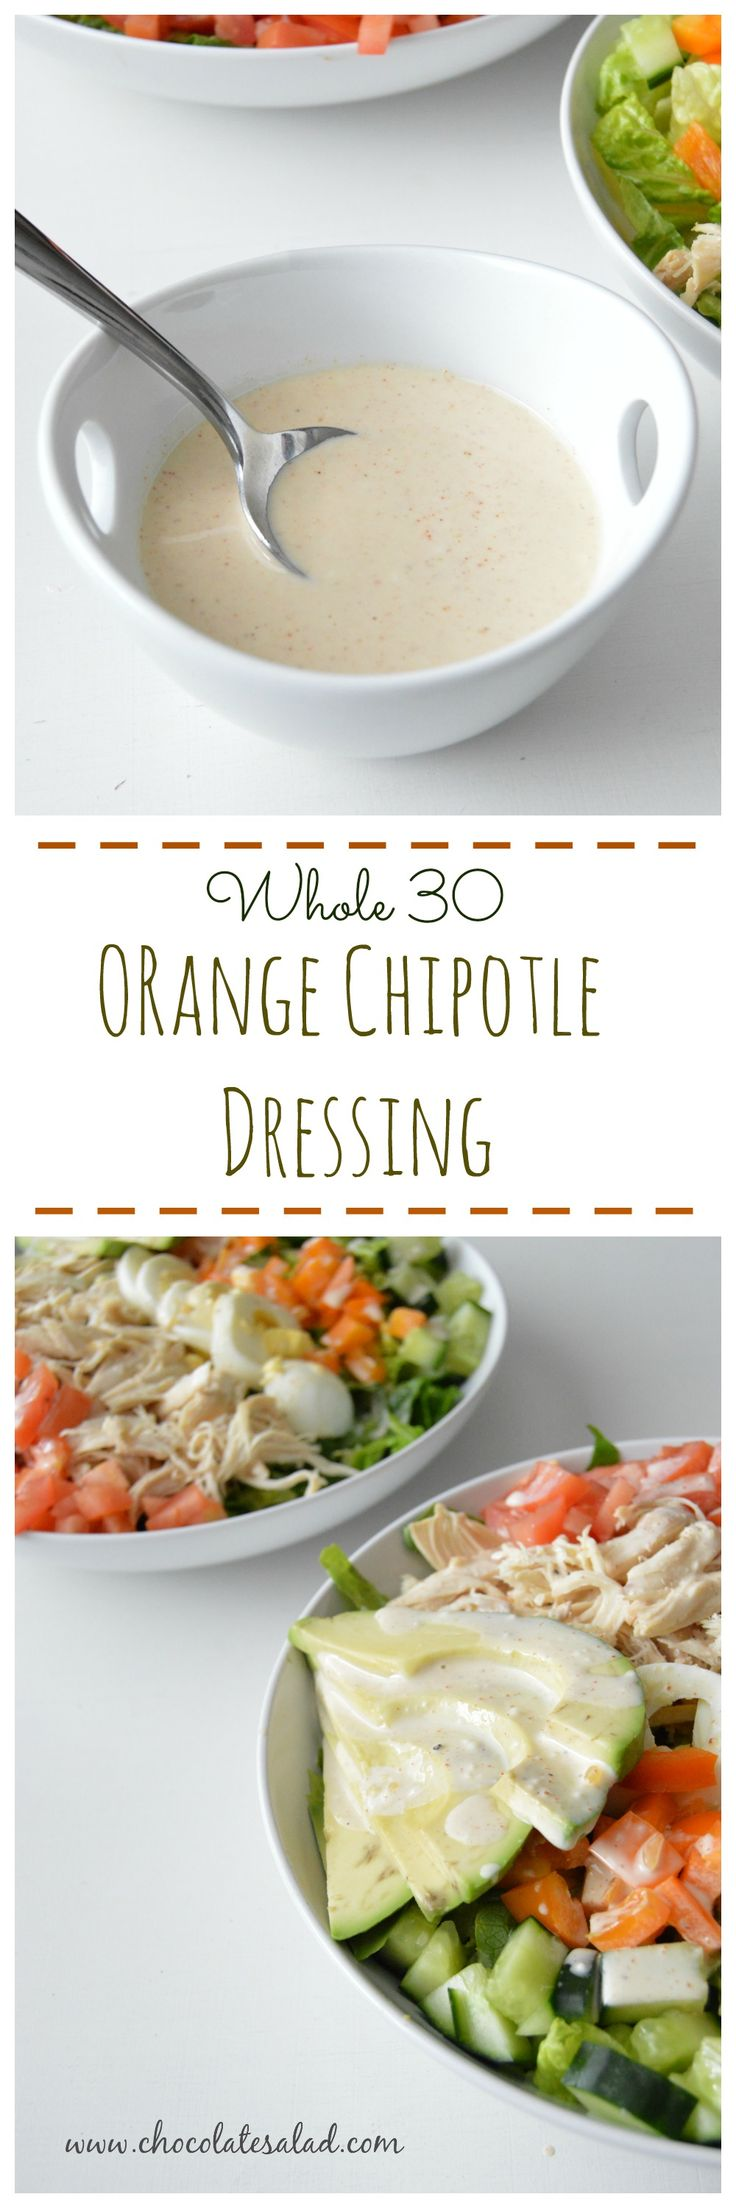 Creamy orange chiptole dressing that works for the Whole 30! on chocolatesalad.com